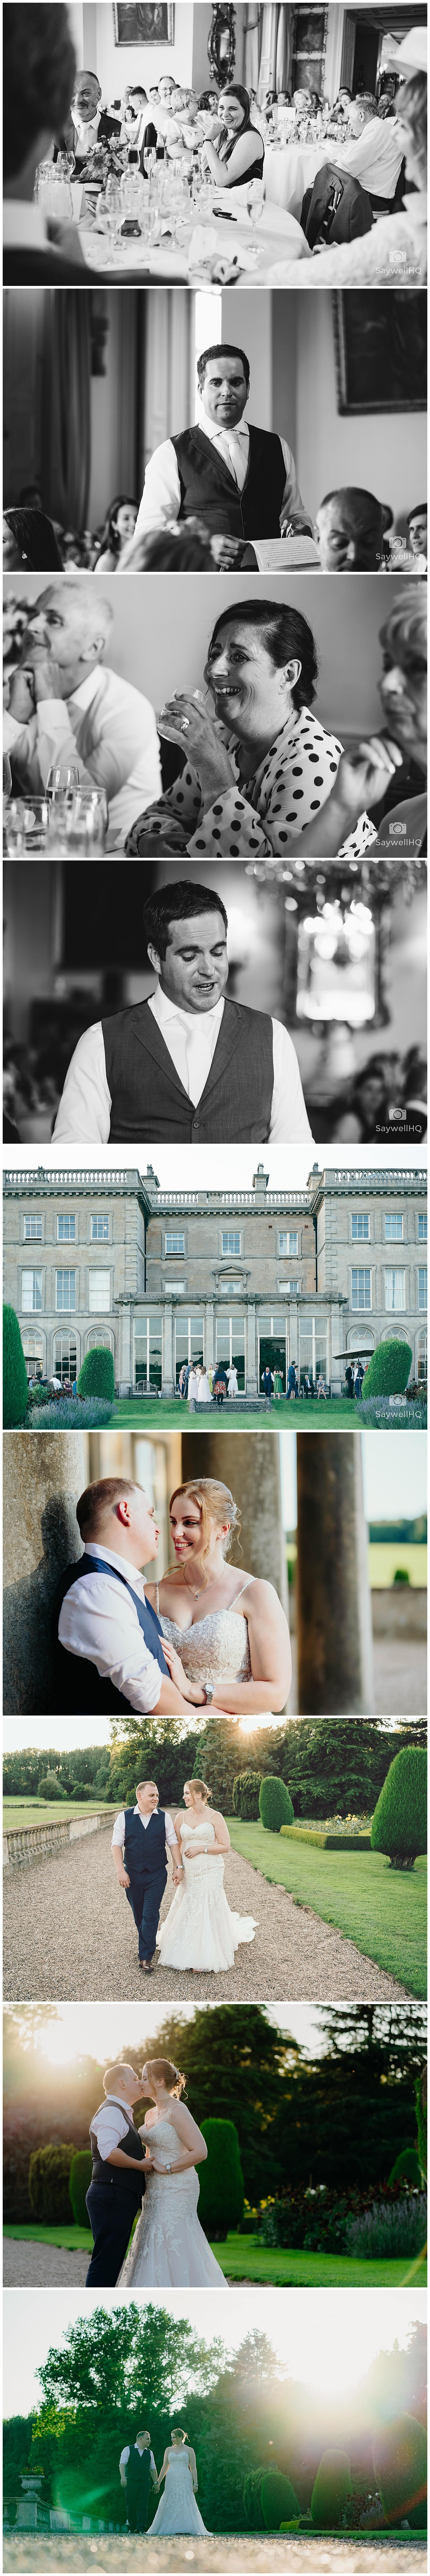 Wedding Photography at Prestwold Hall – evening games at prestwold hall wedding